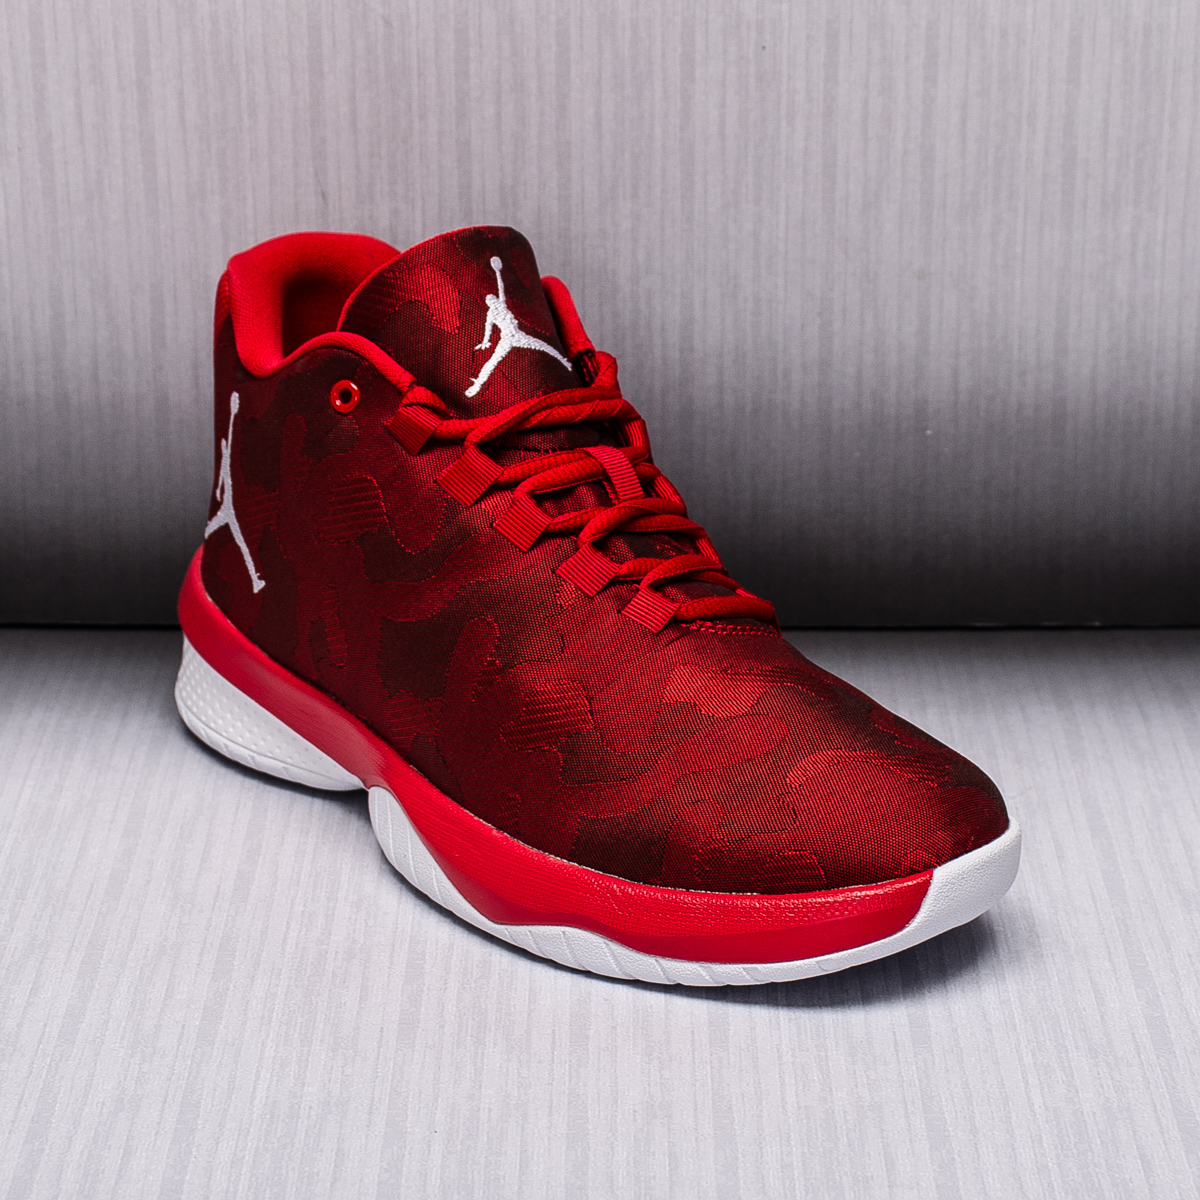 Top Champs Sports coupon: 40% Off. Find 12 Champs Sports coupons and promo codes for December, at androidmods.ml